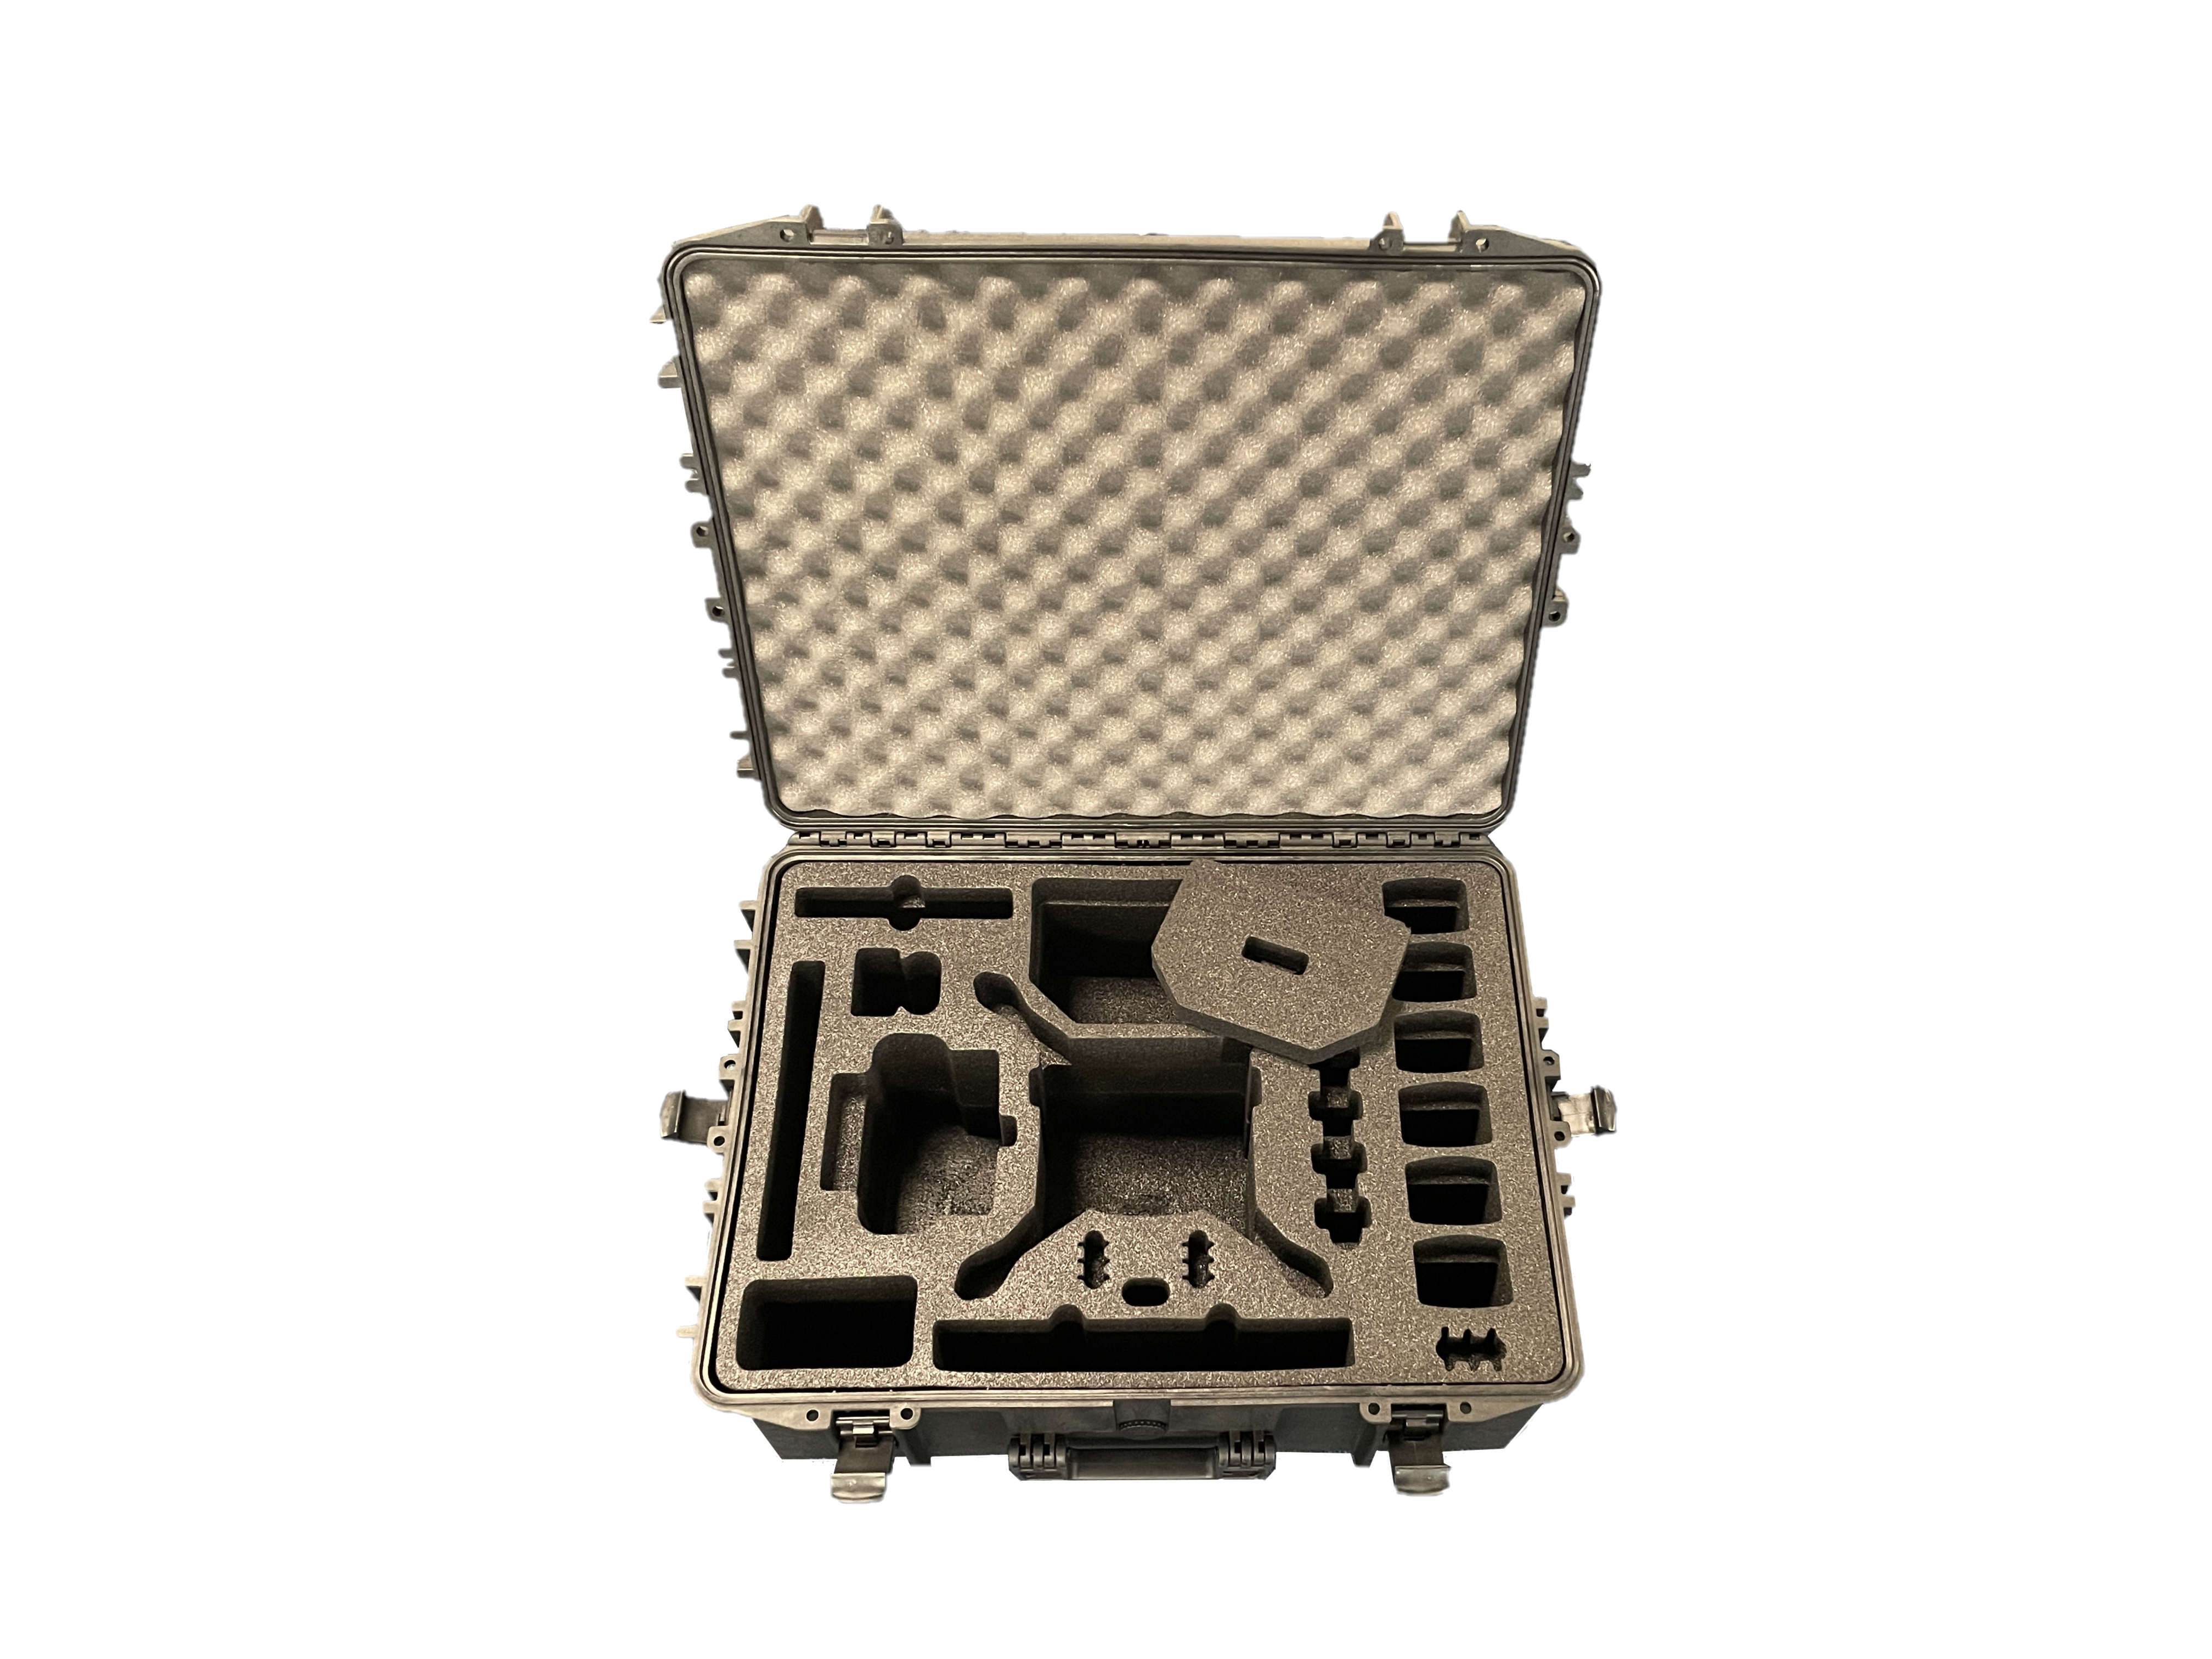 MAX620H250 IP67 Rated Phantom 4 Drone Case